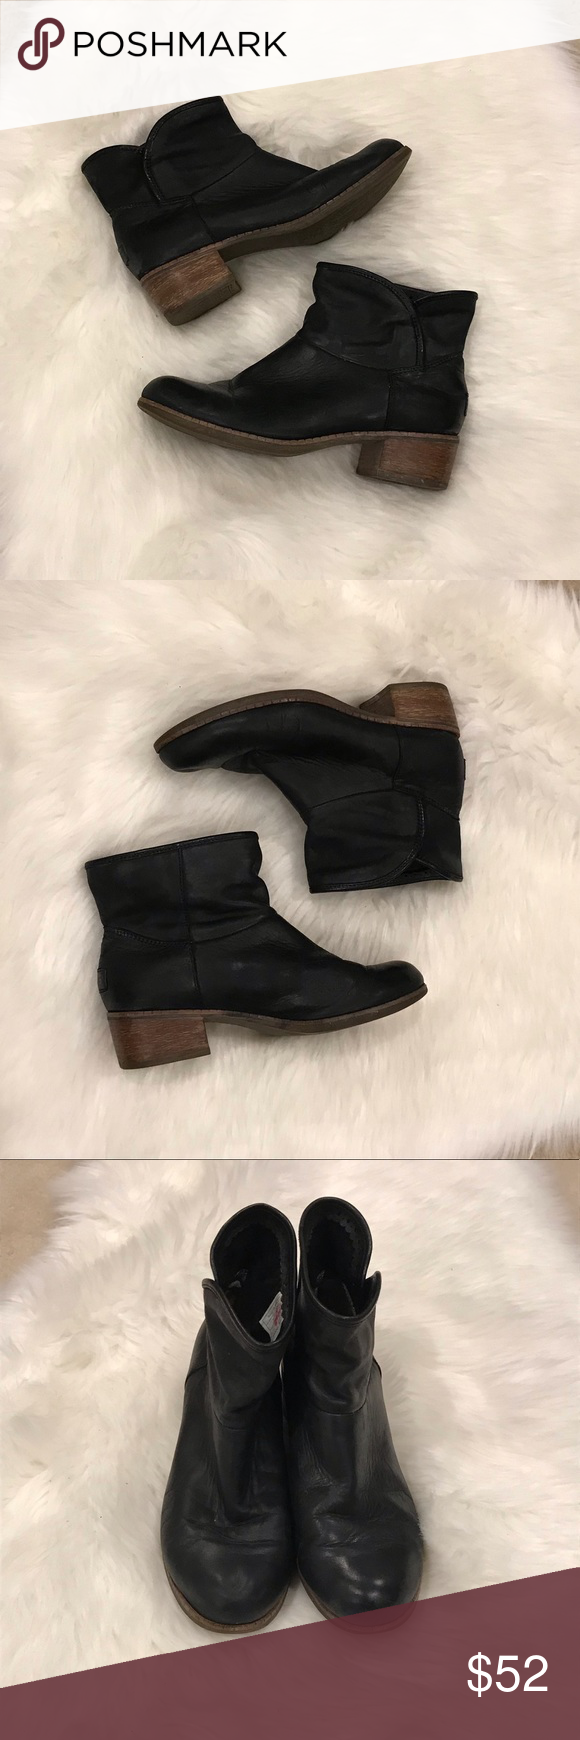 """UGG Leather Slouch Booties Ankle Boots SZ 7.5 These boots are just the right amount of distressed! Great with tights and a dress or skinny jeans.  1.5"""" heel UGG Shoes Ankle Boots & Booties #skinnyjeansandankleboots UGG Leather Slouch Booties Ankle Boots SZ 7.5 These boots are just the right amount of distressed! Great with tights and a dress or skinny jeans.  1.5"""" heel UGG Shoes Ankle Boots & Booties #skinnyjeansandankleboots"""